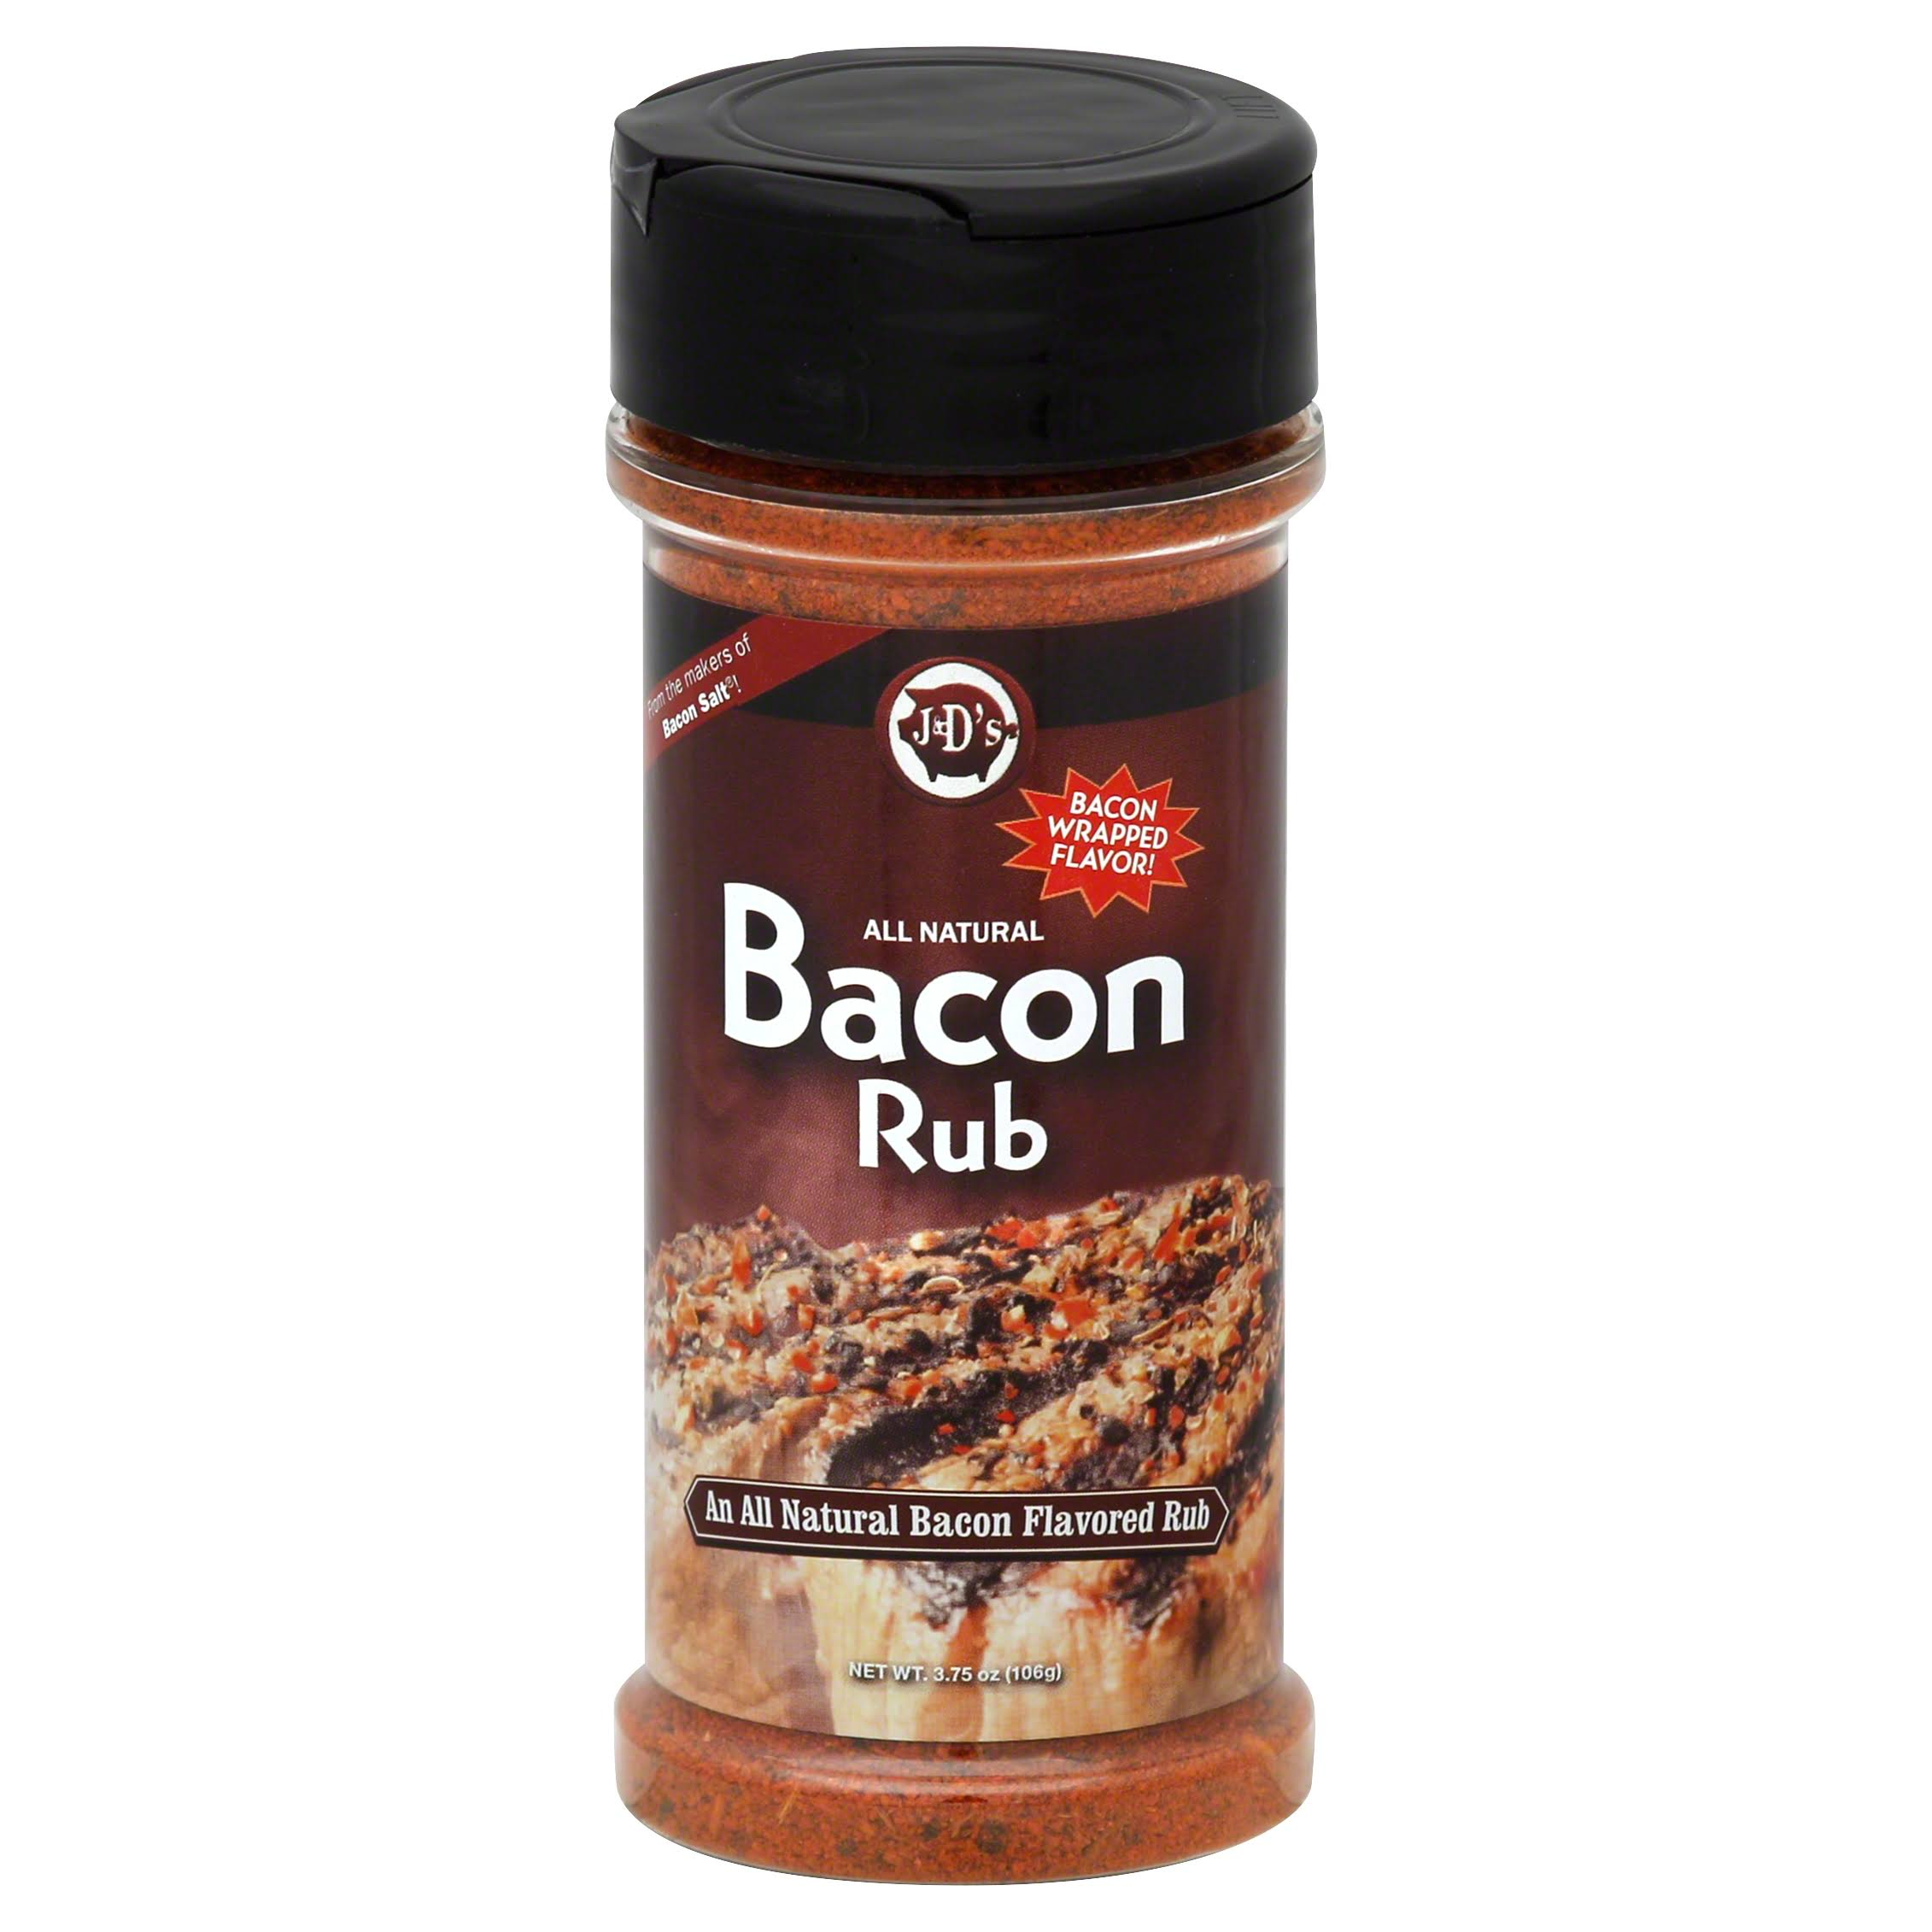 J and Ds Bacon Rub - 3.75oz